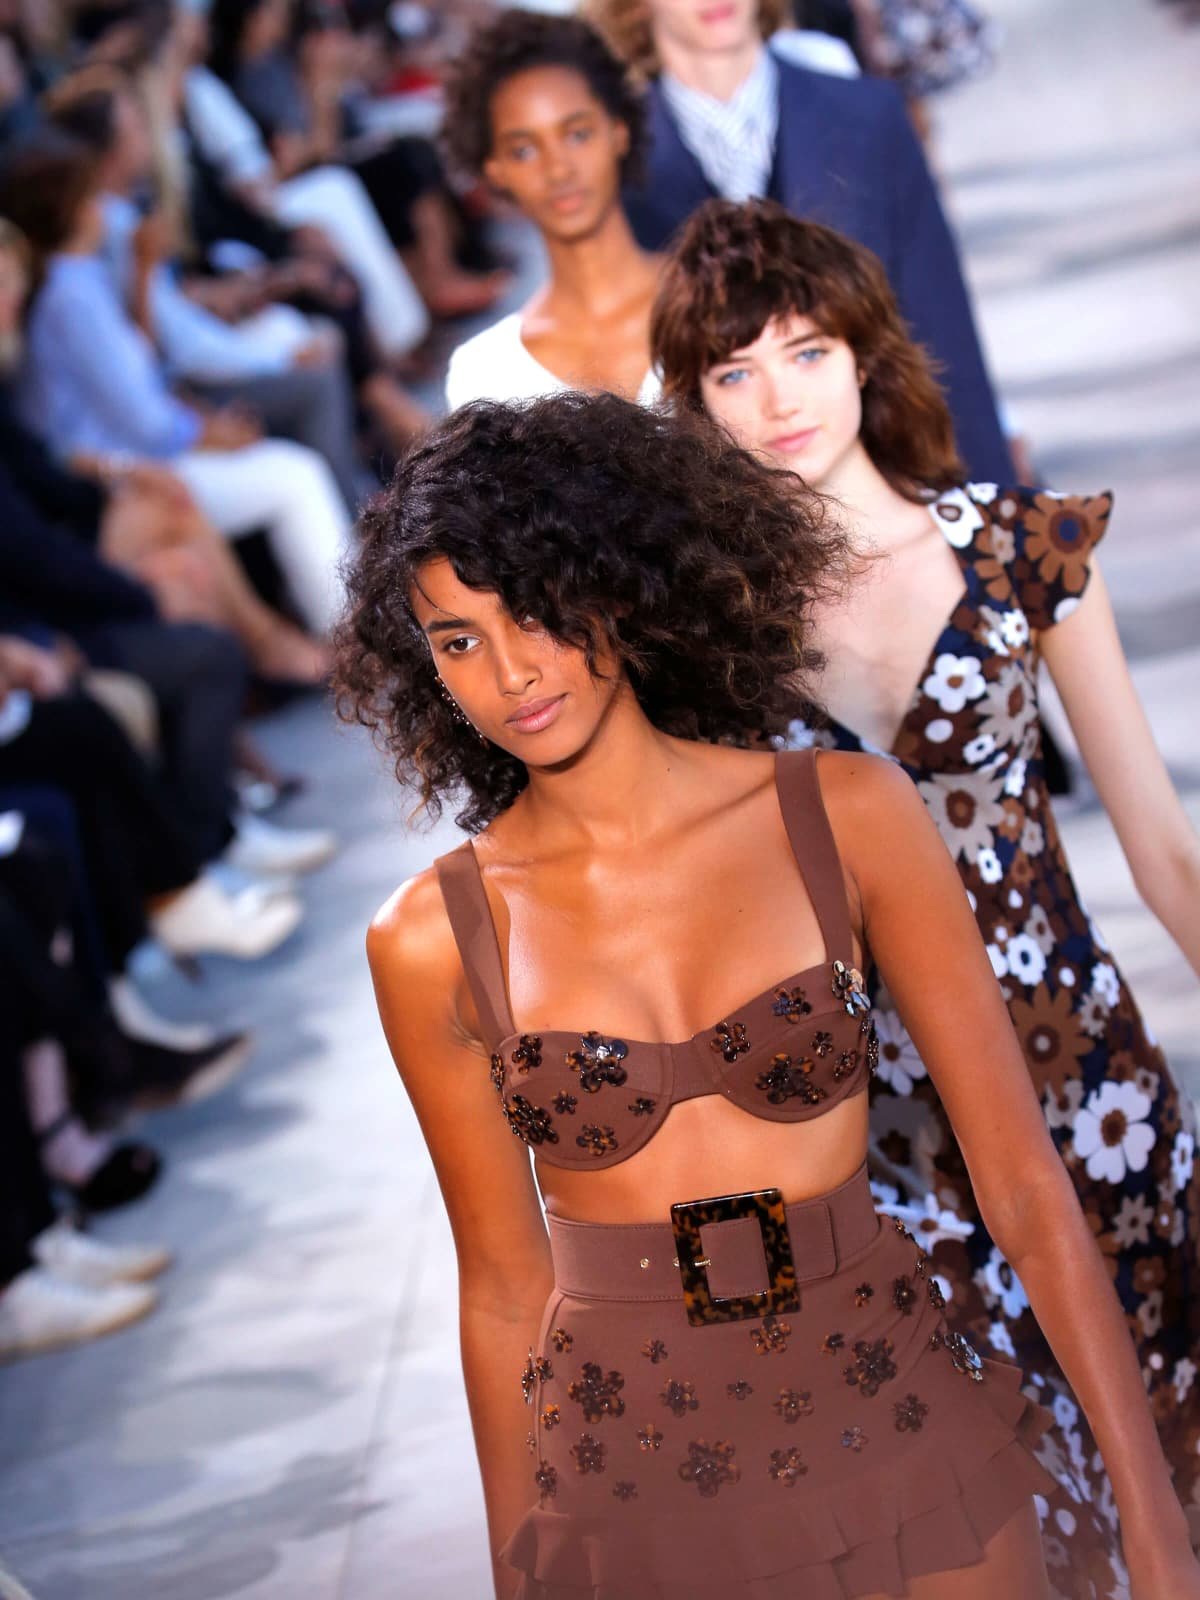 Michael Kors spring 2017 collection bathing suit